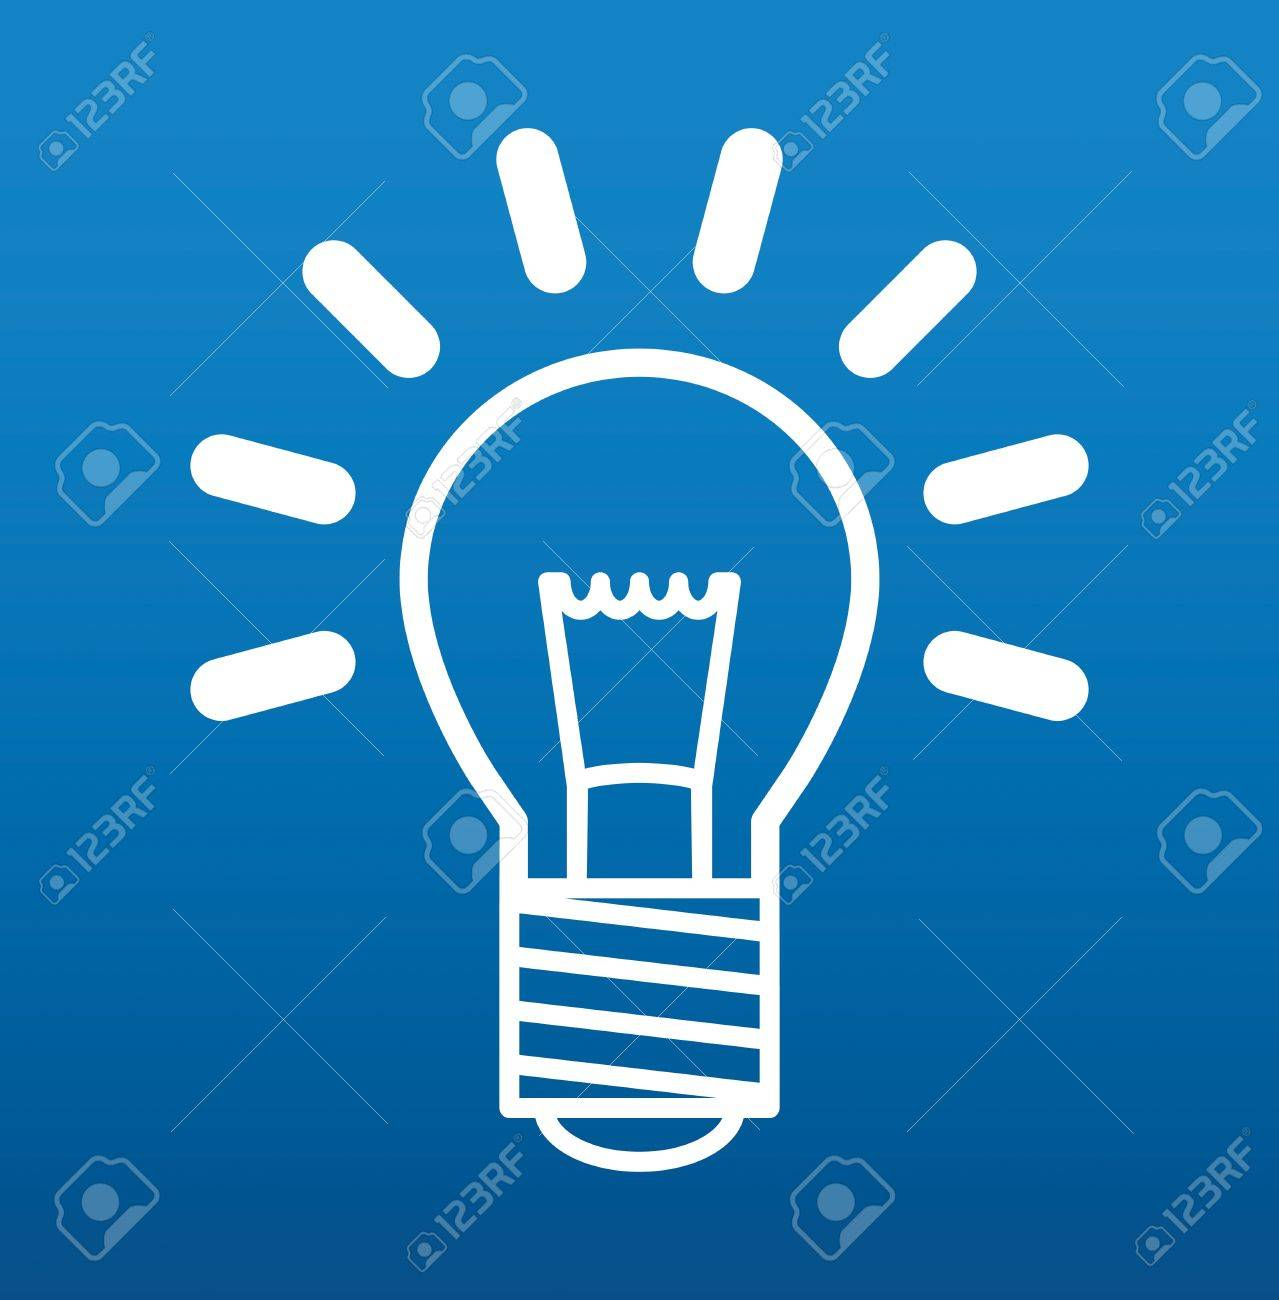 Light bulb sign Stock Vector - 17457418